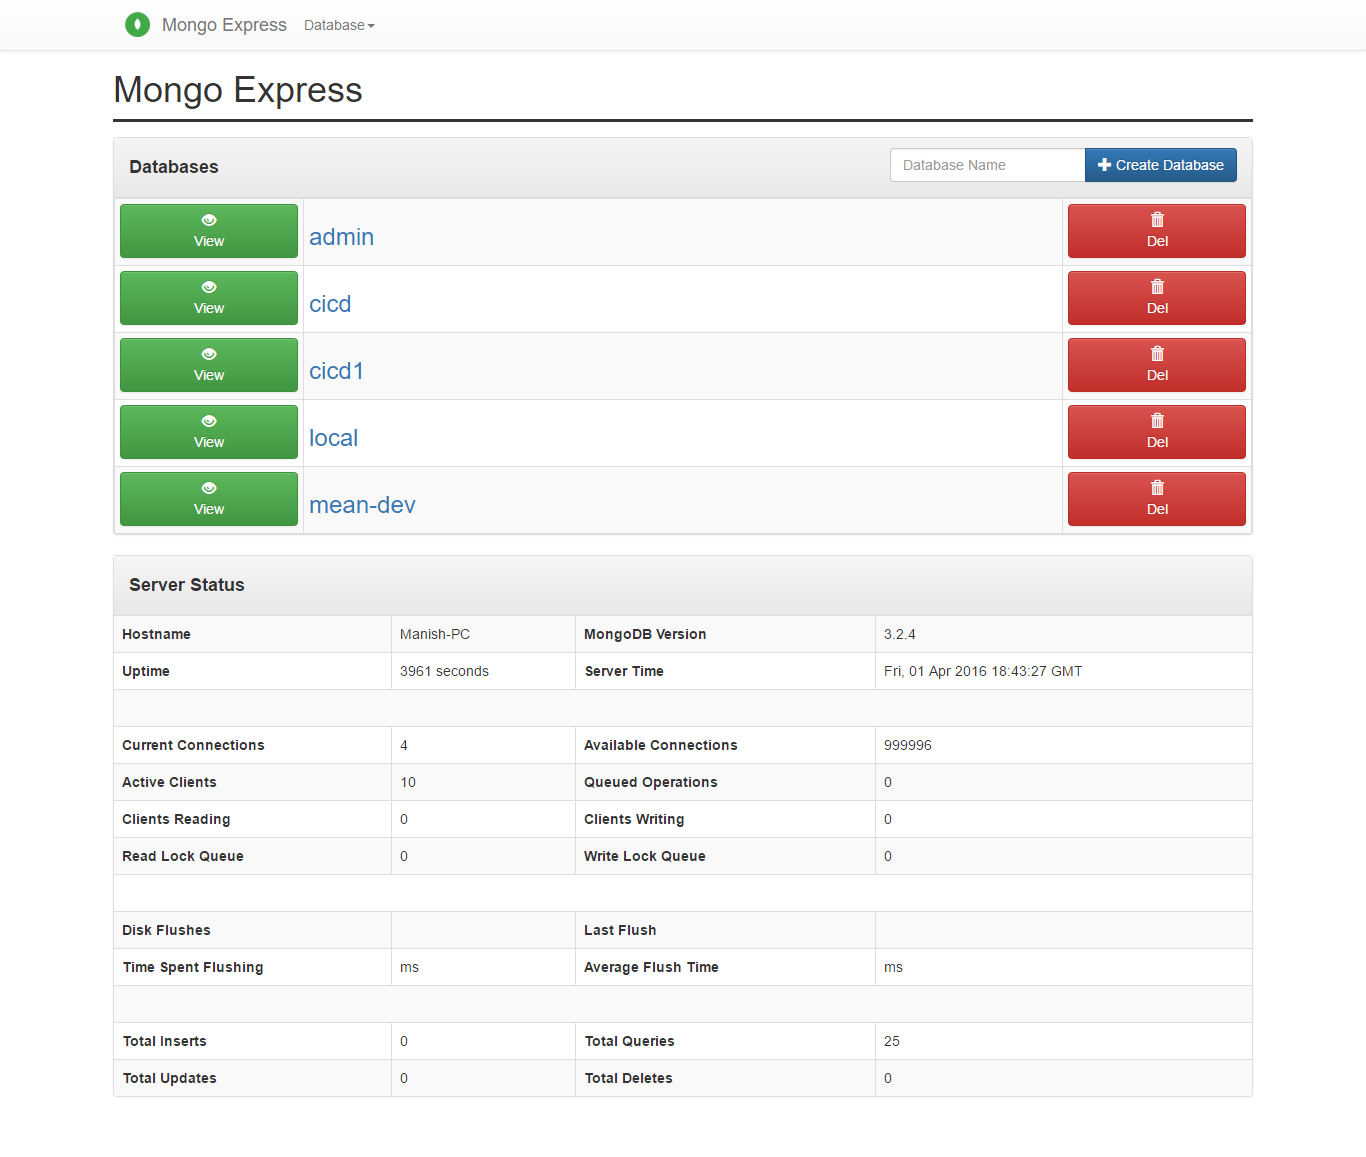 mongodb-management-eco-visualization-tools-05